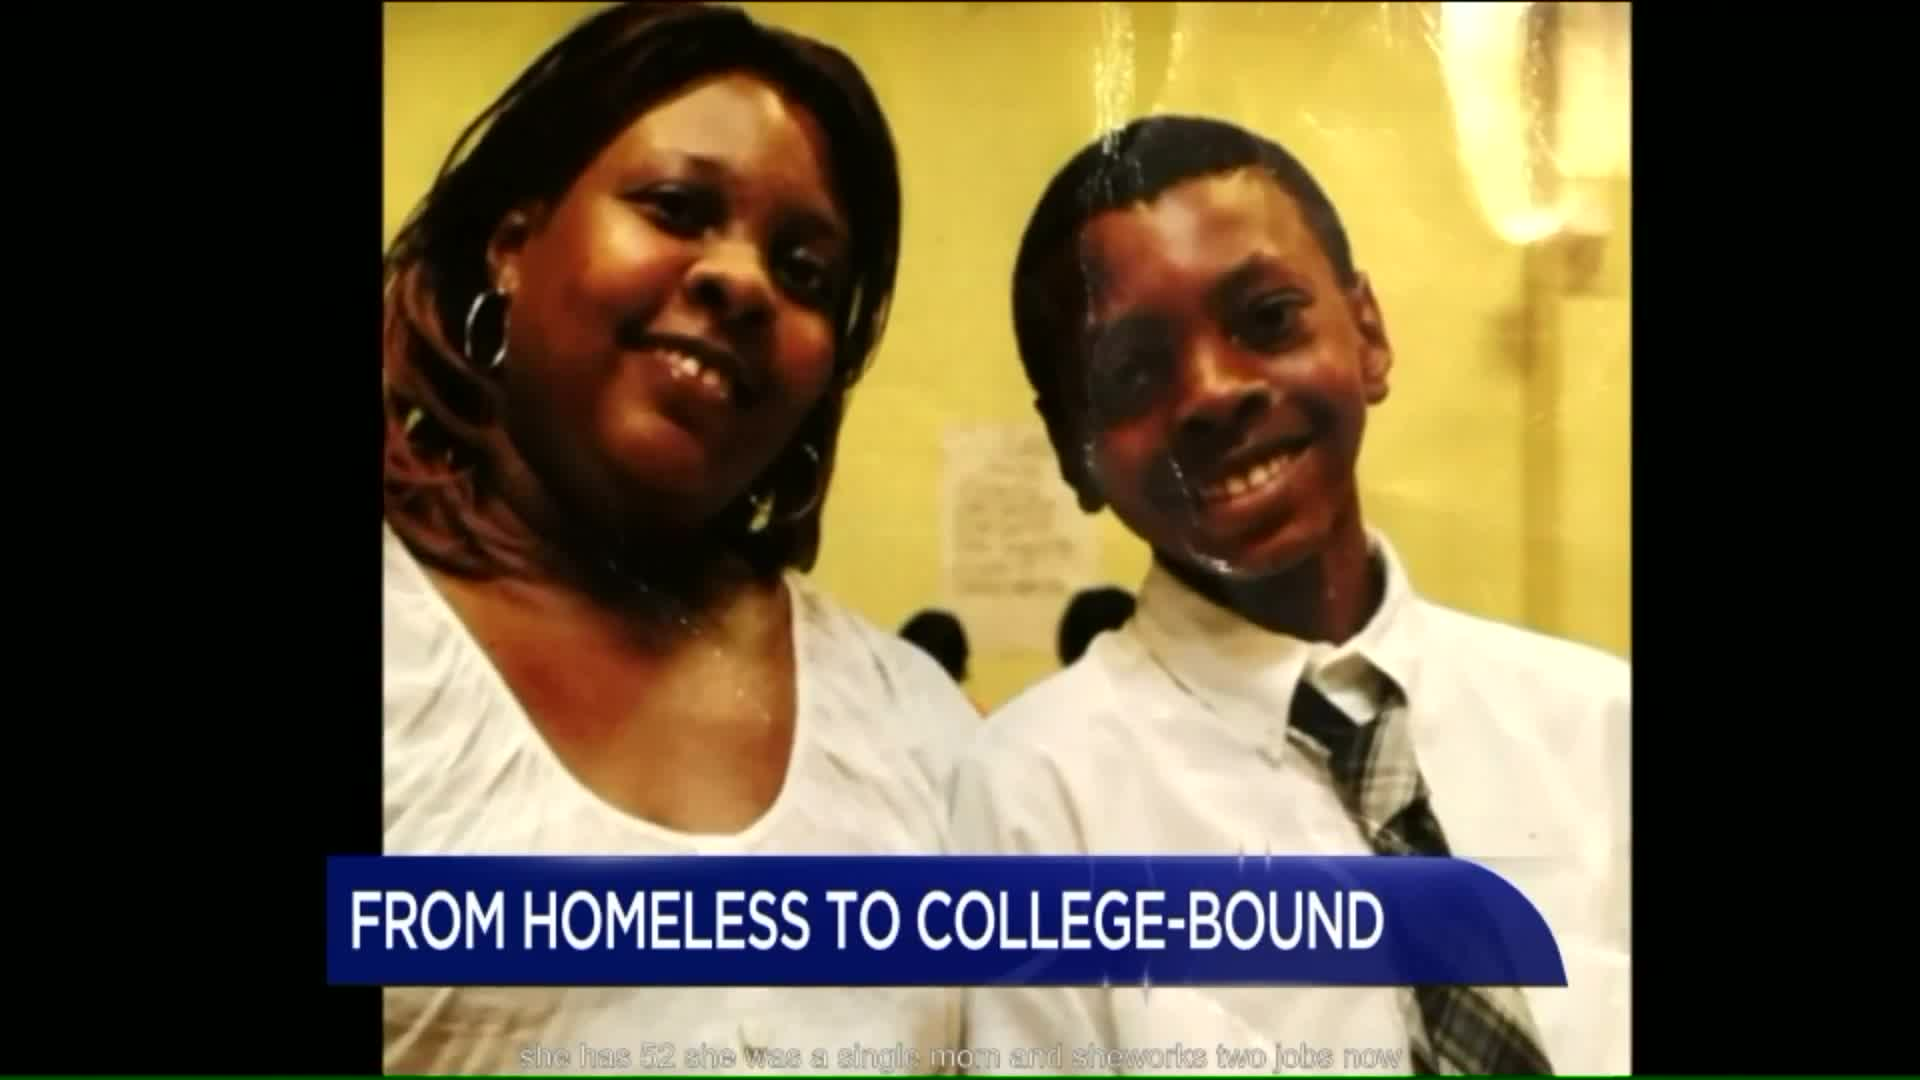 Homeless Teen Who Lived in Car Heads to College